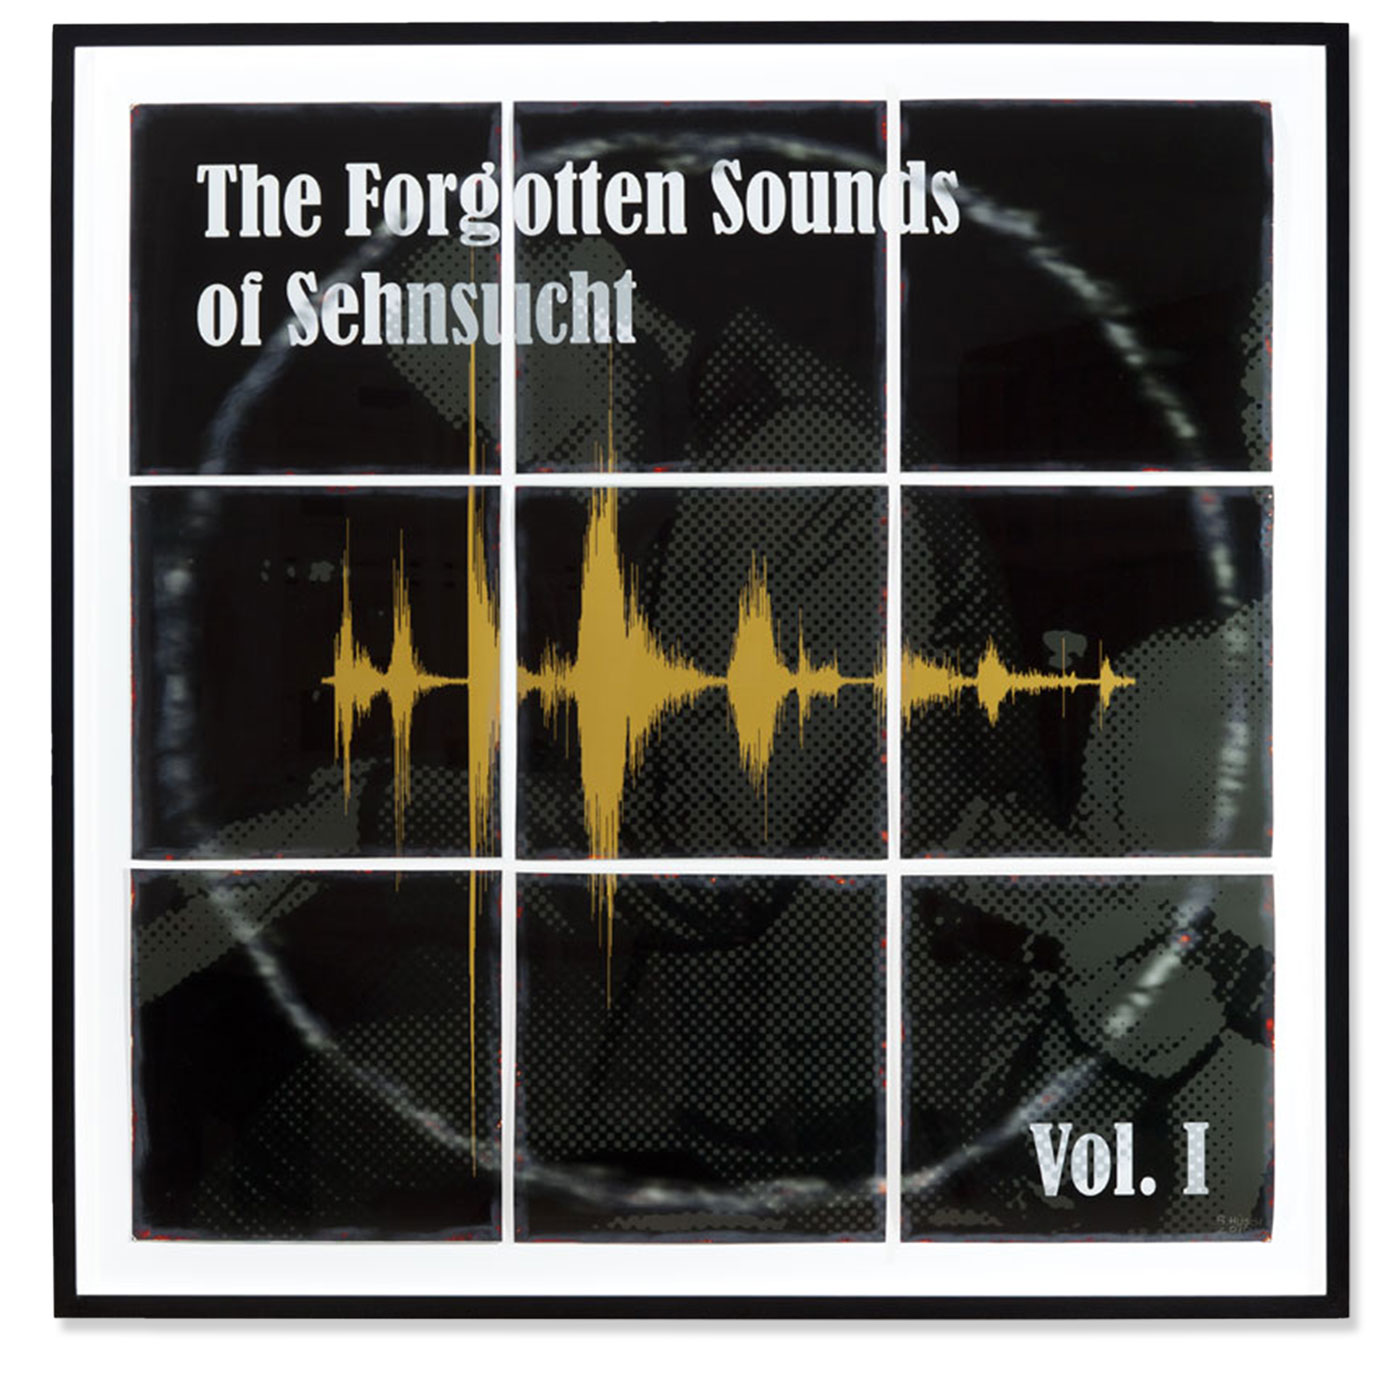 THE FORGOTTEN SOUNDS OF SEHNSUCHT VOL. I,  © 2010, metallic photo paper, cardboard, behind glass, 105 x 105 x 3,5 cm